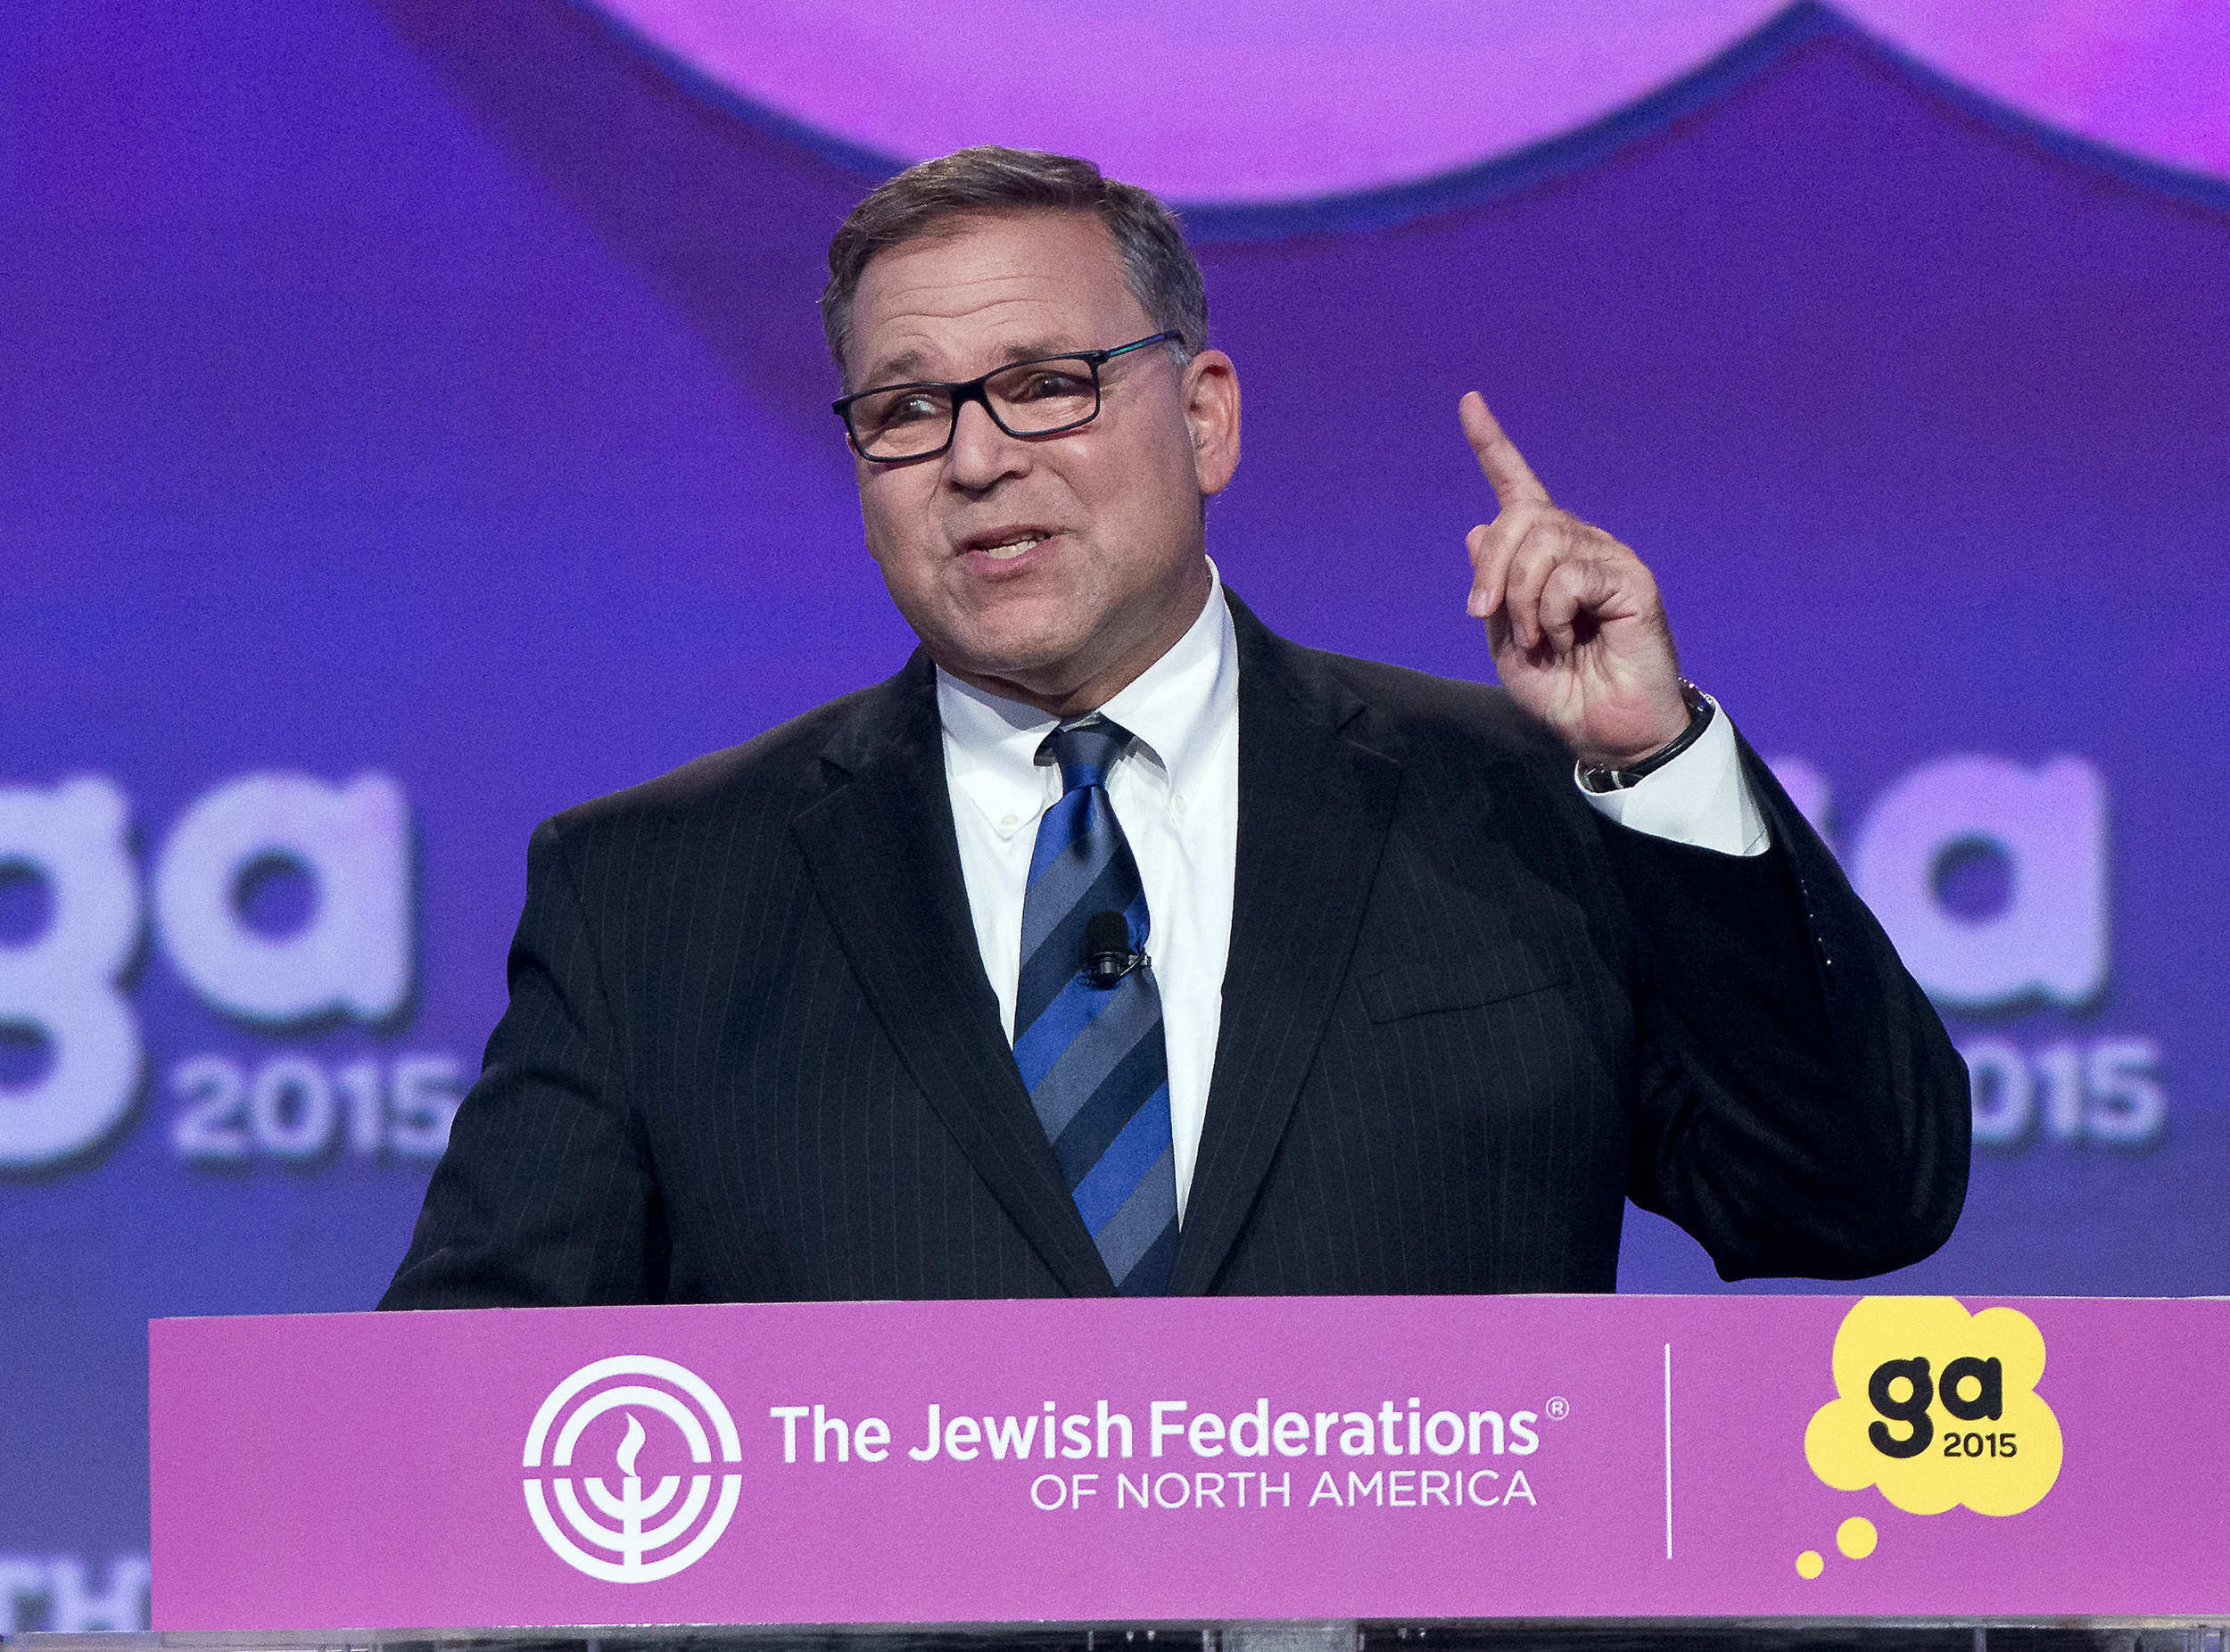 Jerry Silverman, president and CEO of The Jewish Federations of North America (JFNA), speaks at the JFNA General Assembly on Monday in Washington, DC. Credit: Ron Sachs.